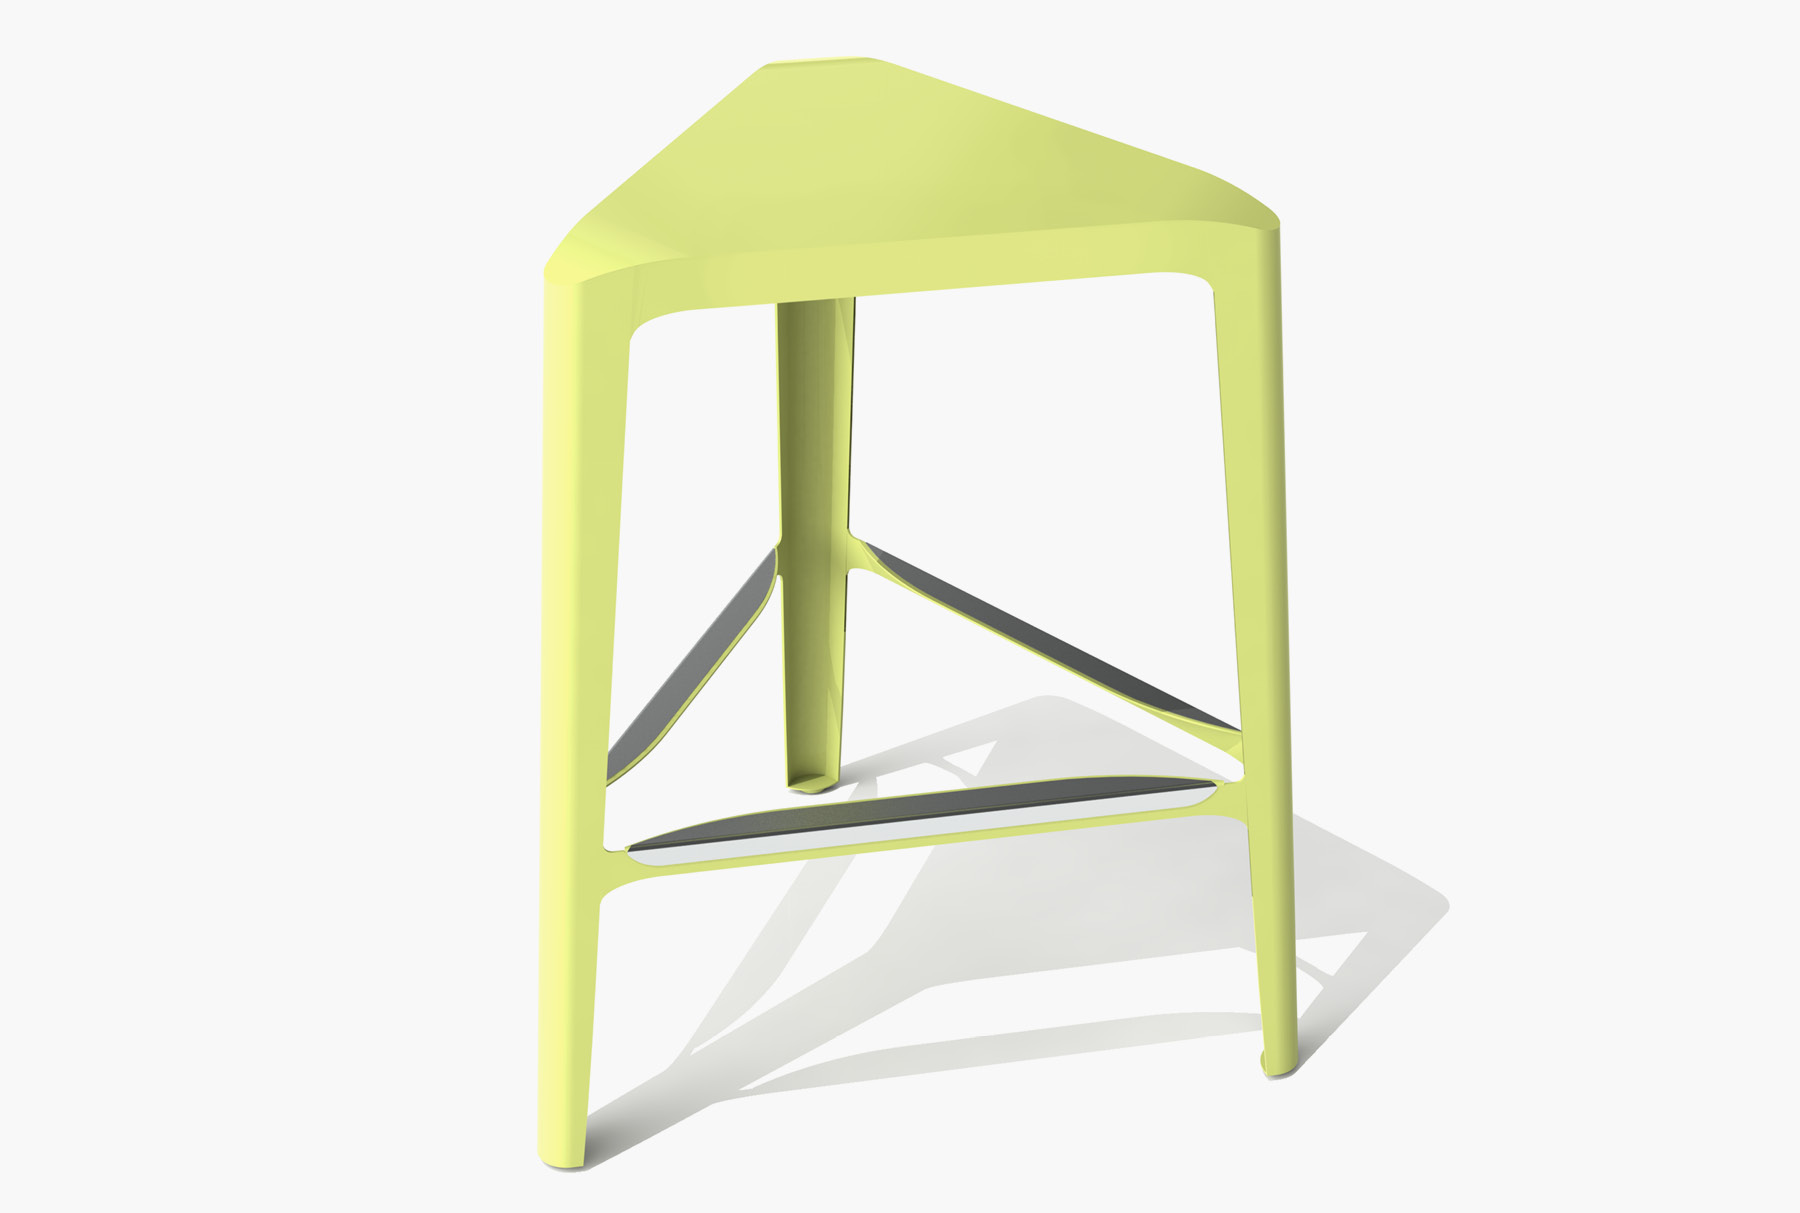 Arktura Clic Mid Stool in Lush Green